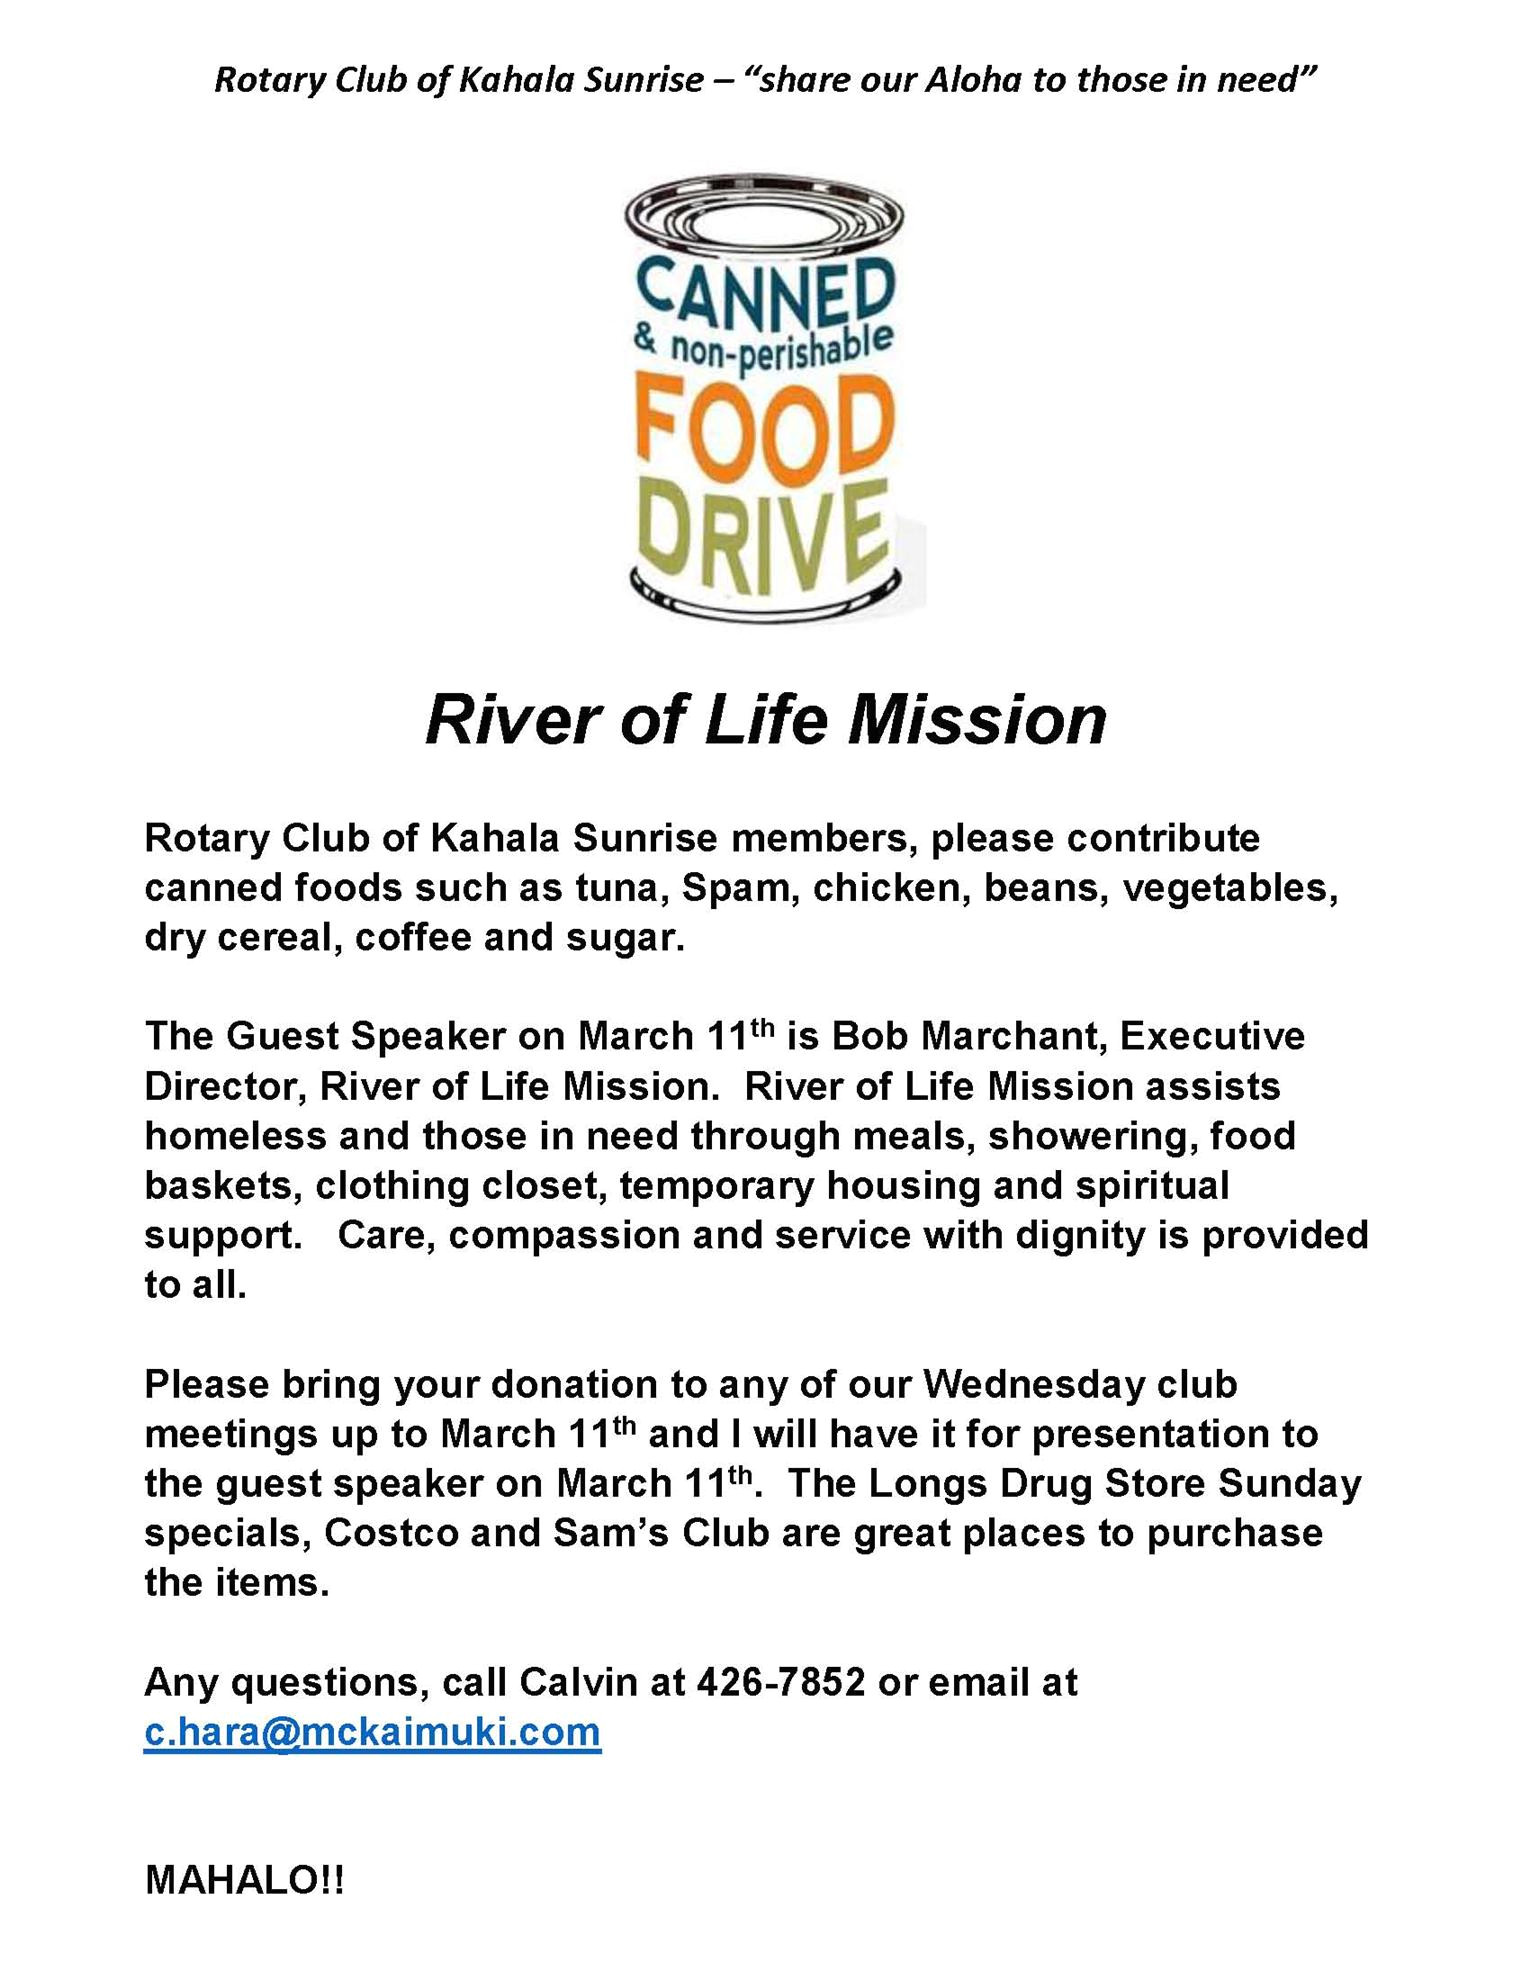 river of life mission food drive